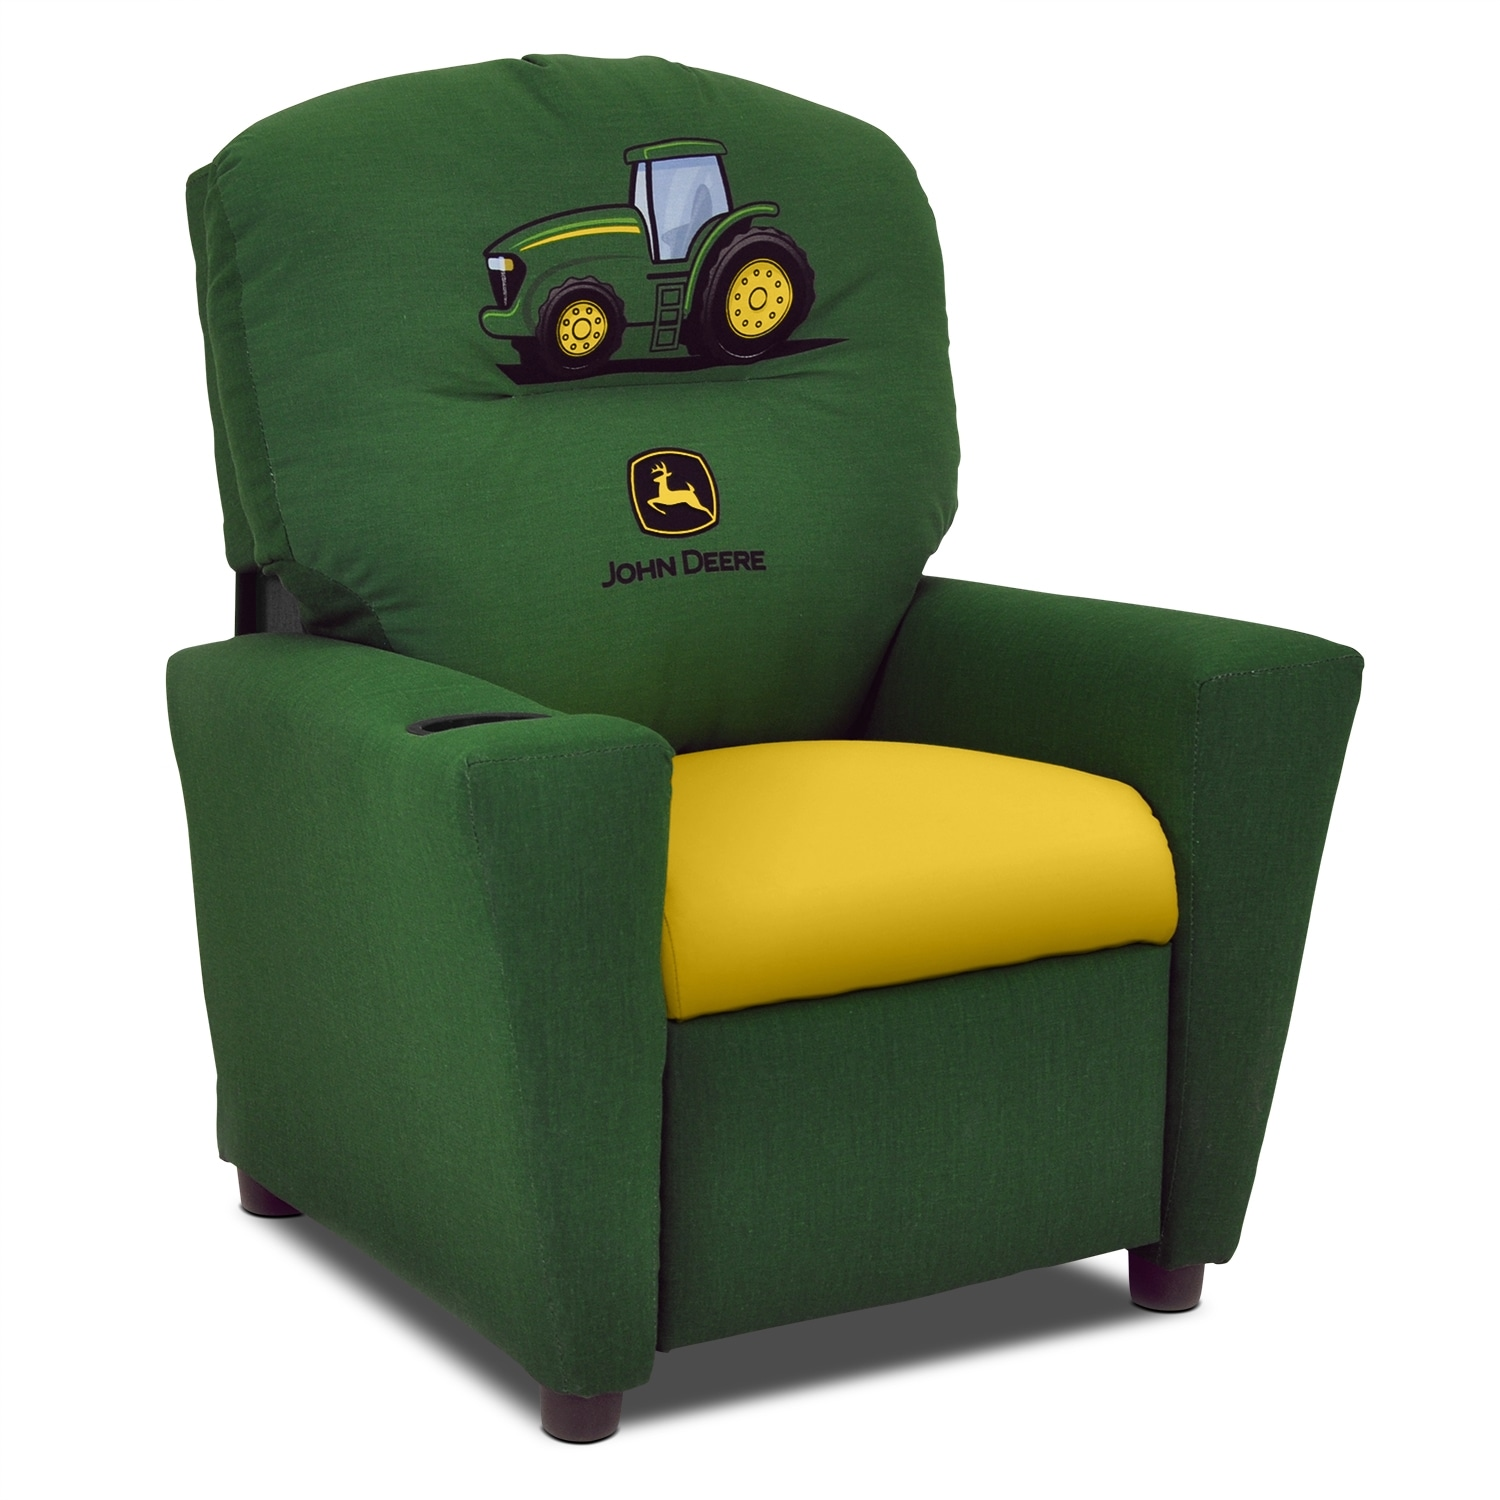 Kids Furniture - John Deere Childu0027s Recliner - Green. Hover to zoom  sc 1 st  Value City Furniture : child recliner chairs - islam-shia.org